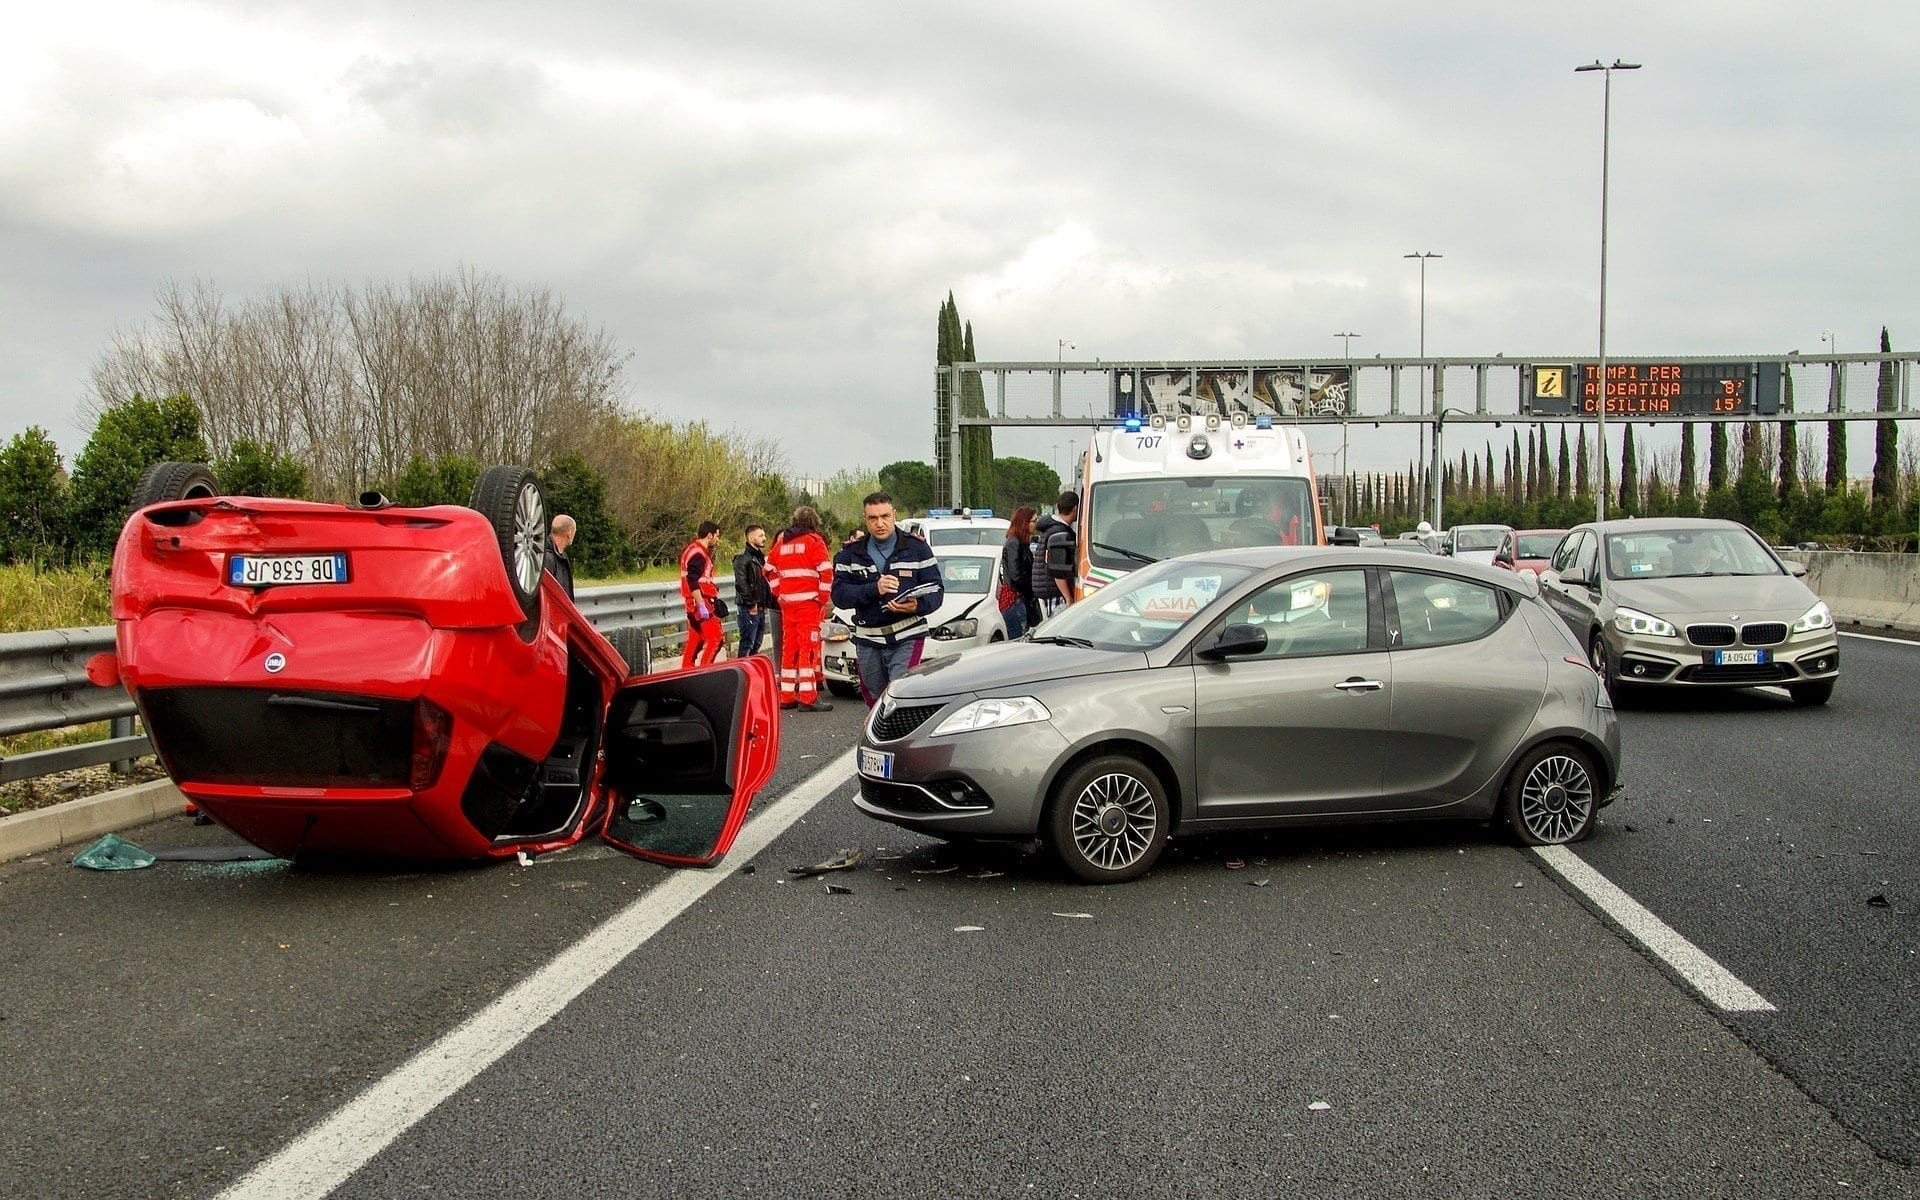 Car accident in a highway